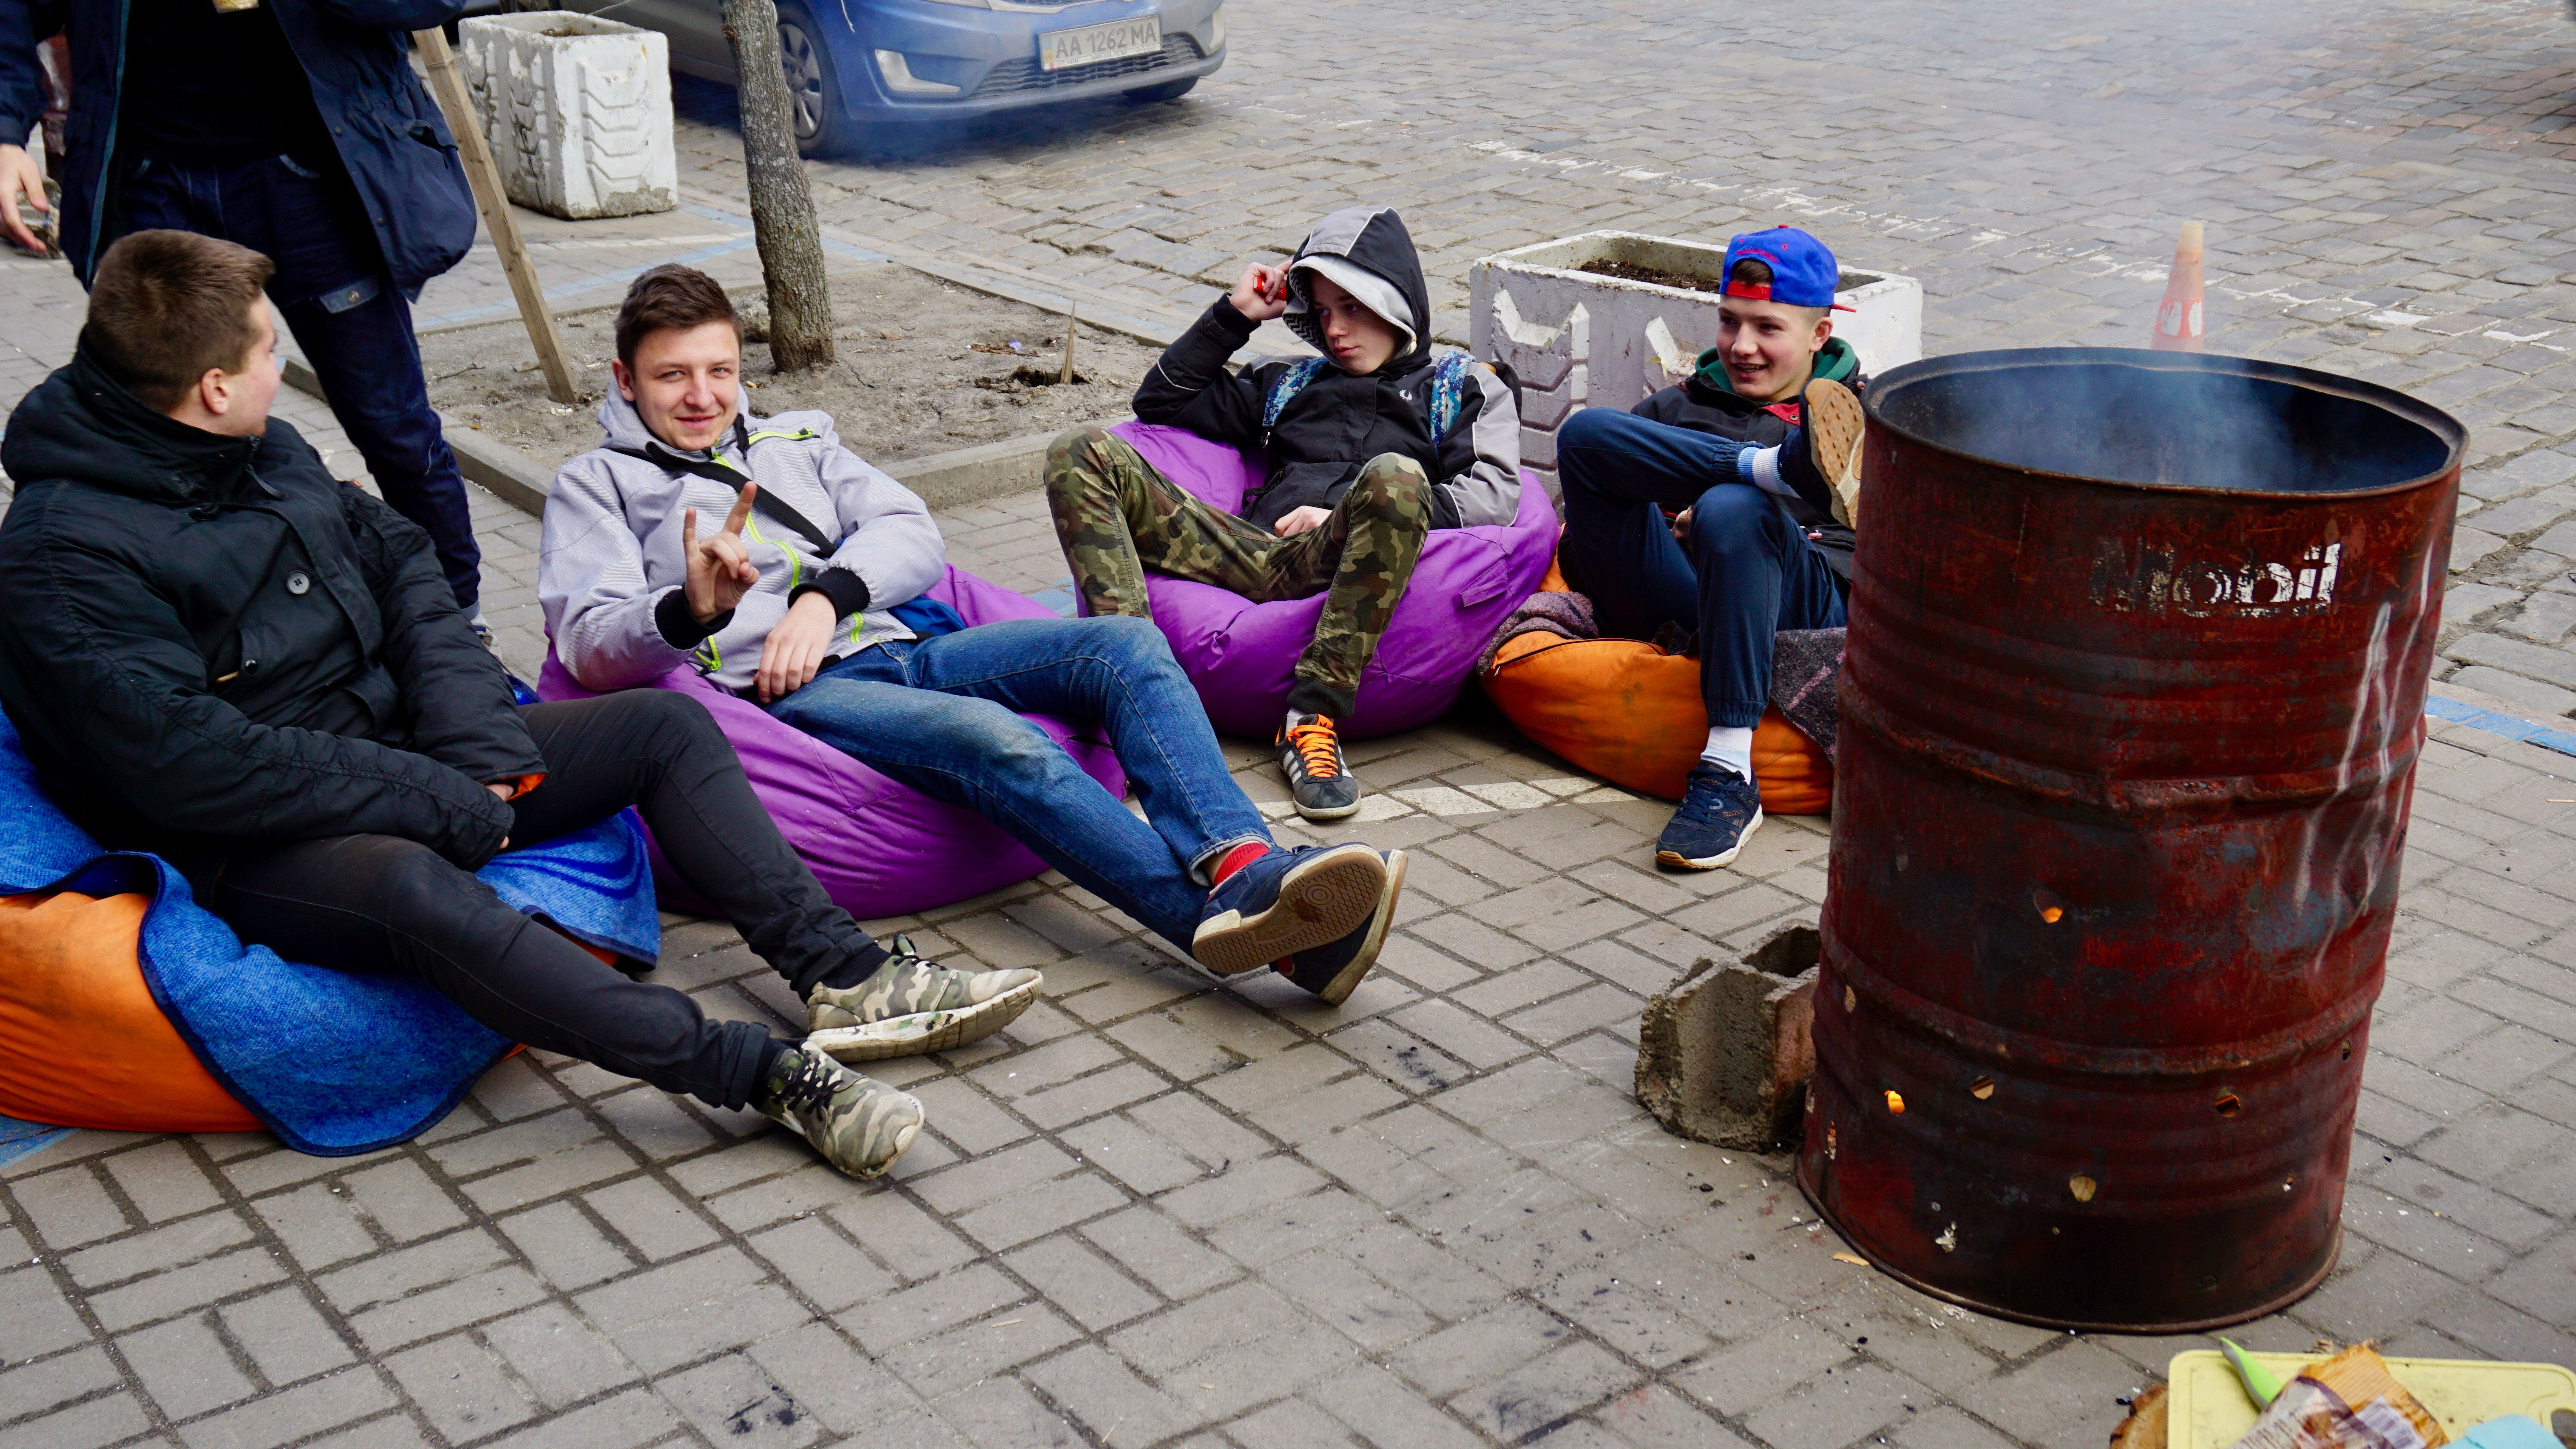 Protesters keep warm while camped out in front of the Sberbank branch in central Kyiv. (Photos: Nolan Peterson/The Daily Signal)